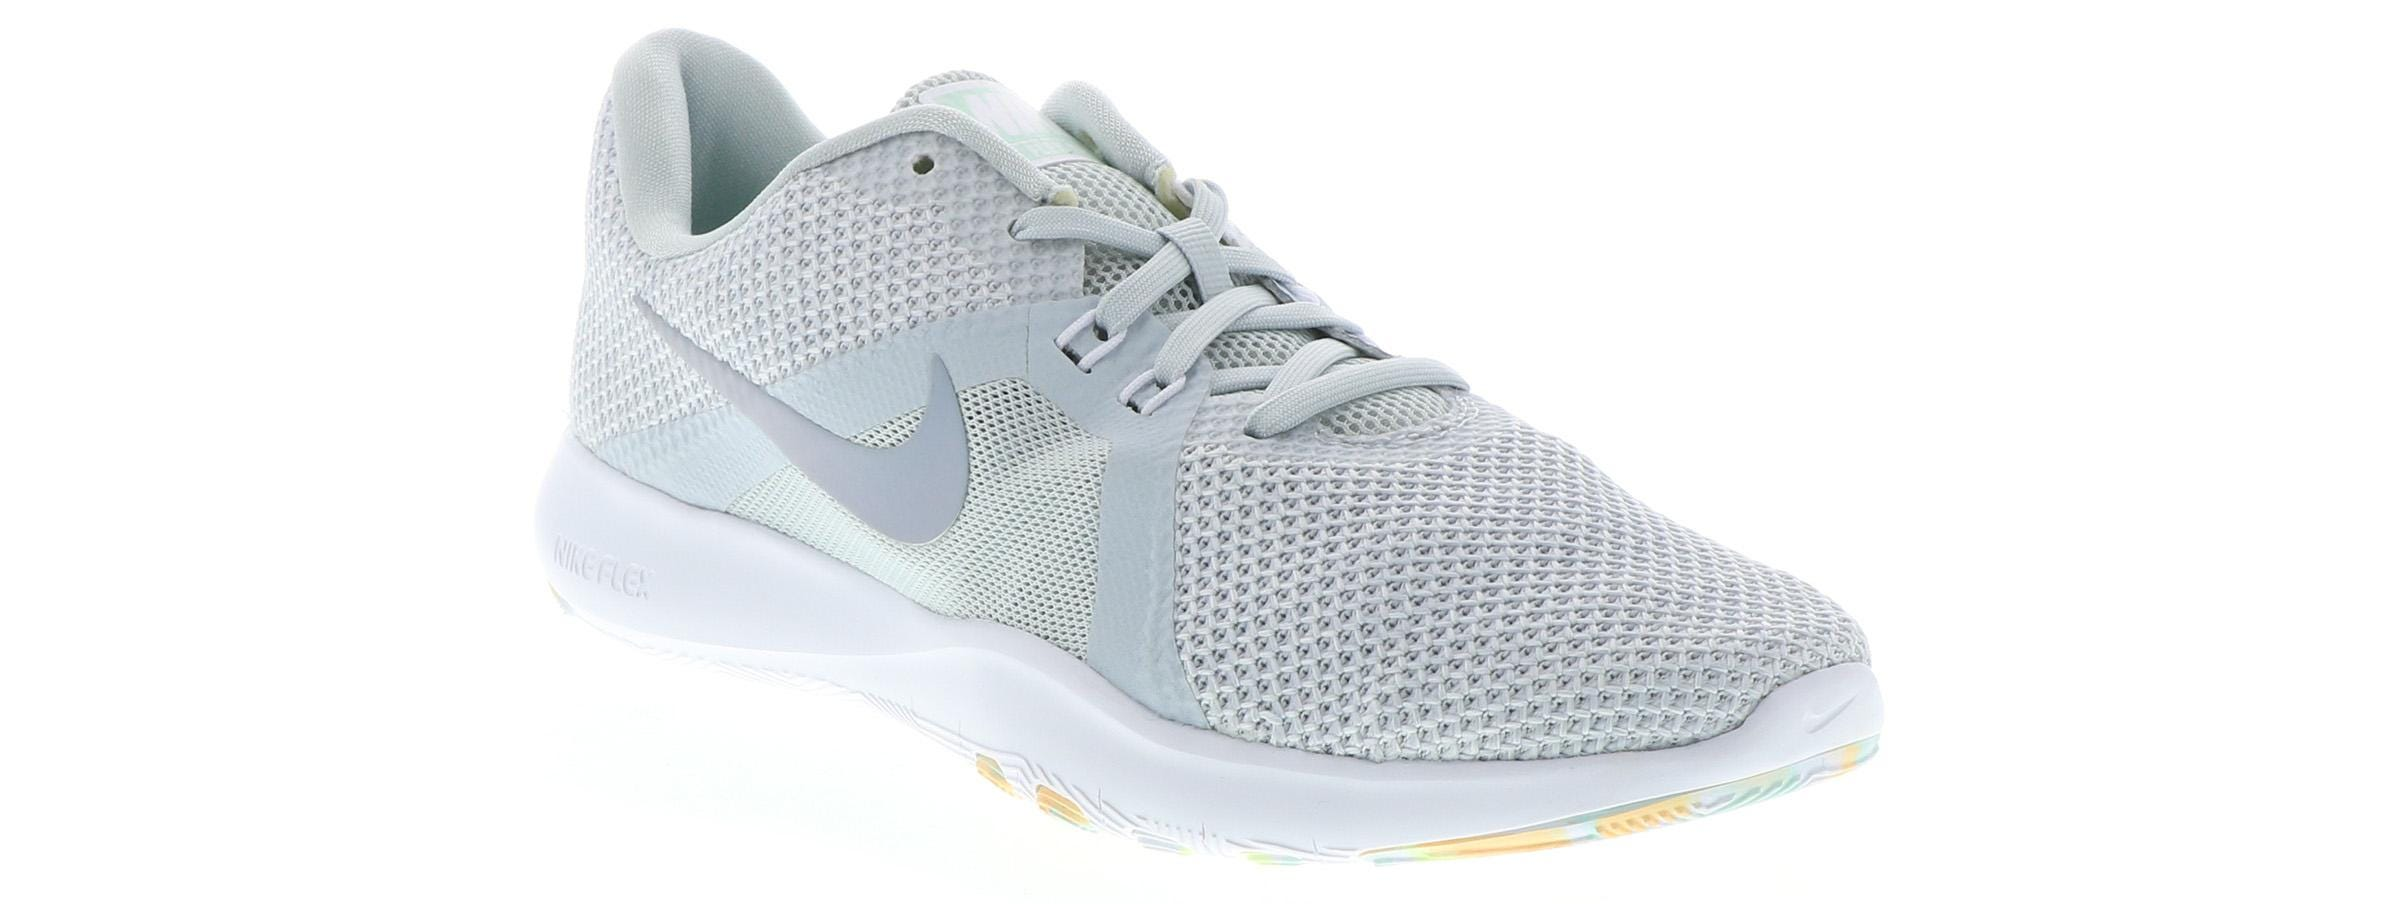 cheap for discount sold worldwide elegant shoes Women's Nike Flex TR 8